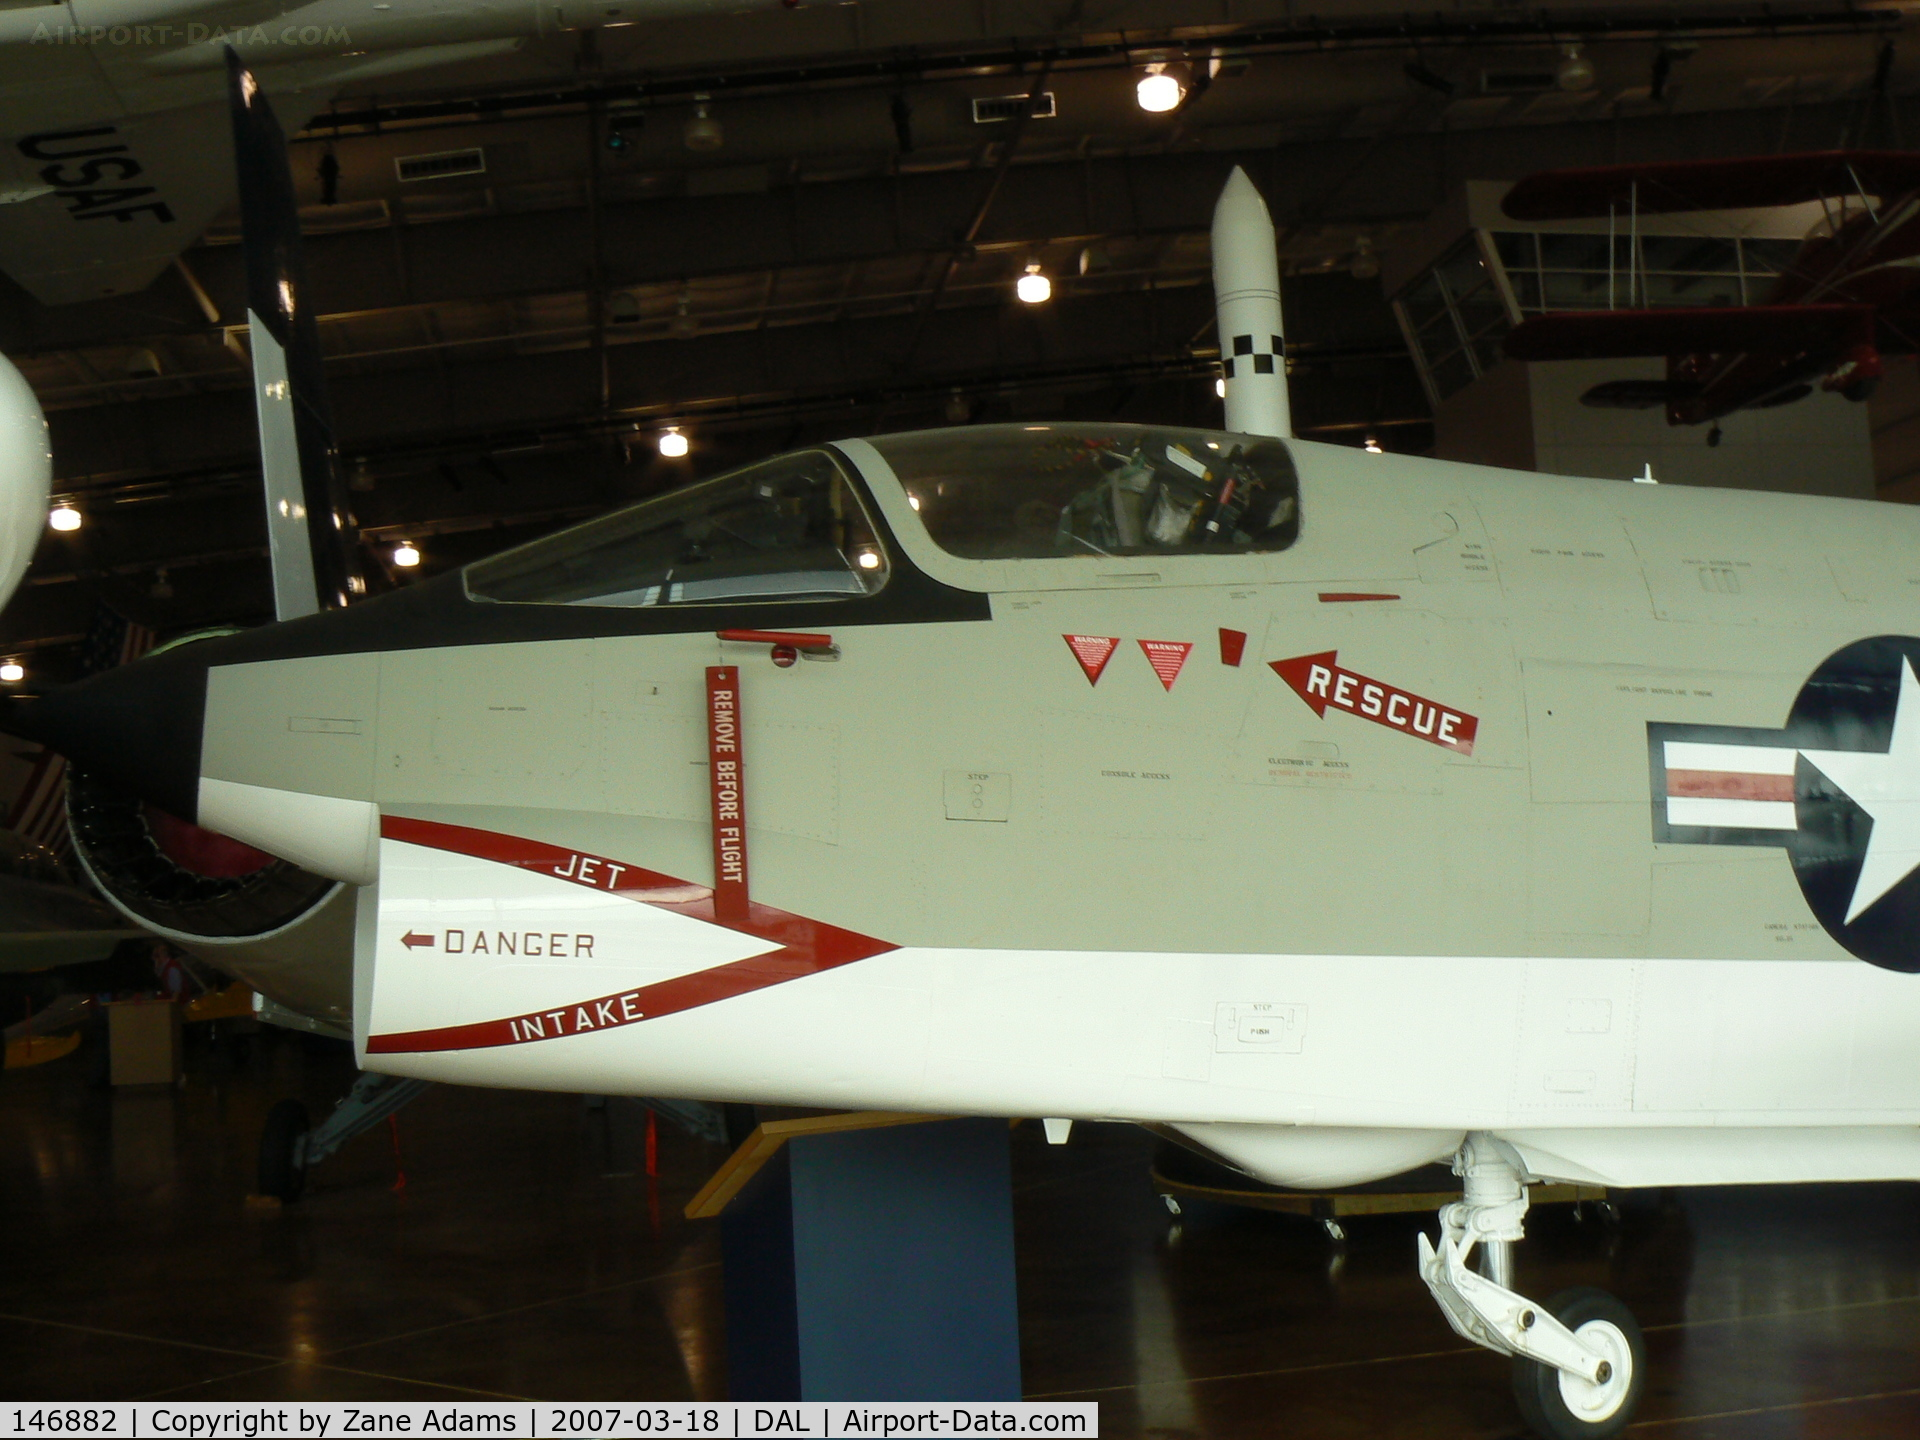 146882, Vought F8U-1P Crusader C/N Not found 146882, At Frontiers of Flight Museum - Dallas, TX